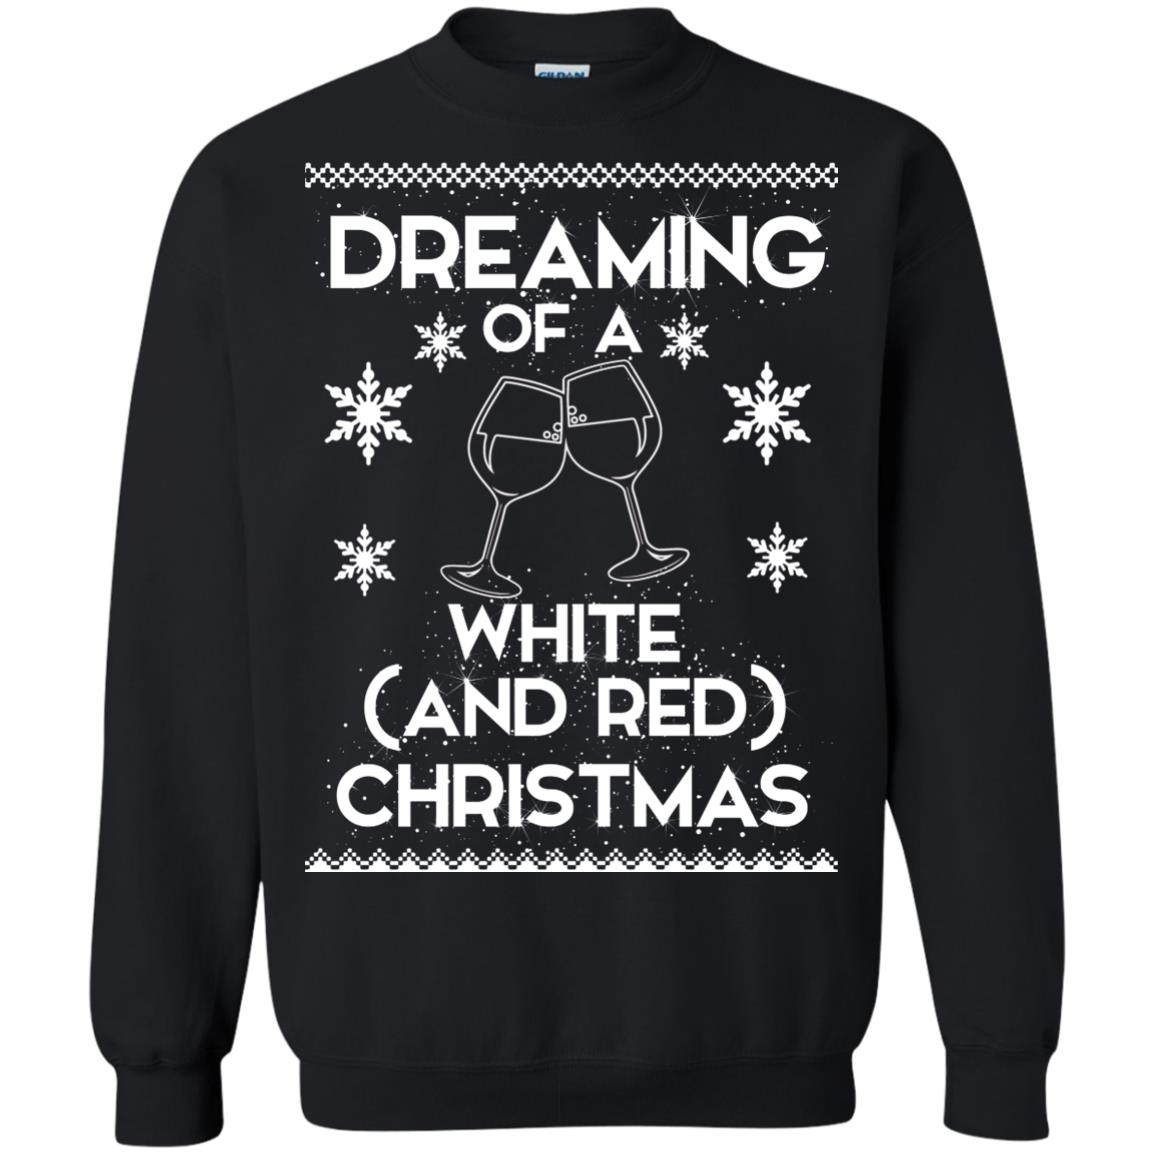 image 1762 - Dreaming of a White and Red Christmas Sweatshirt, Hoodie